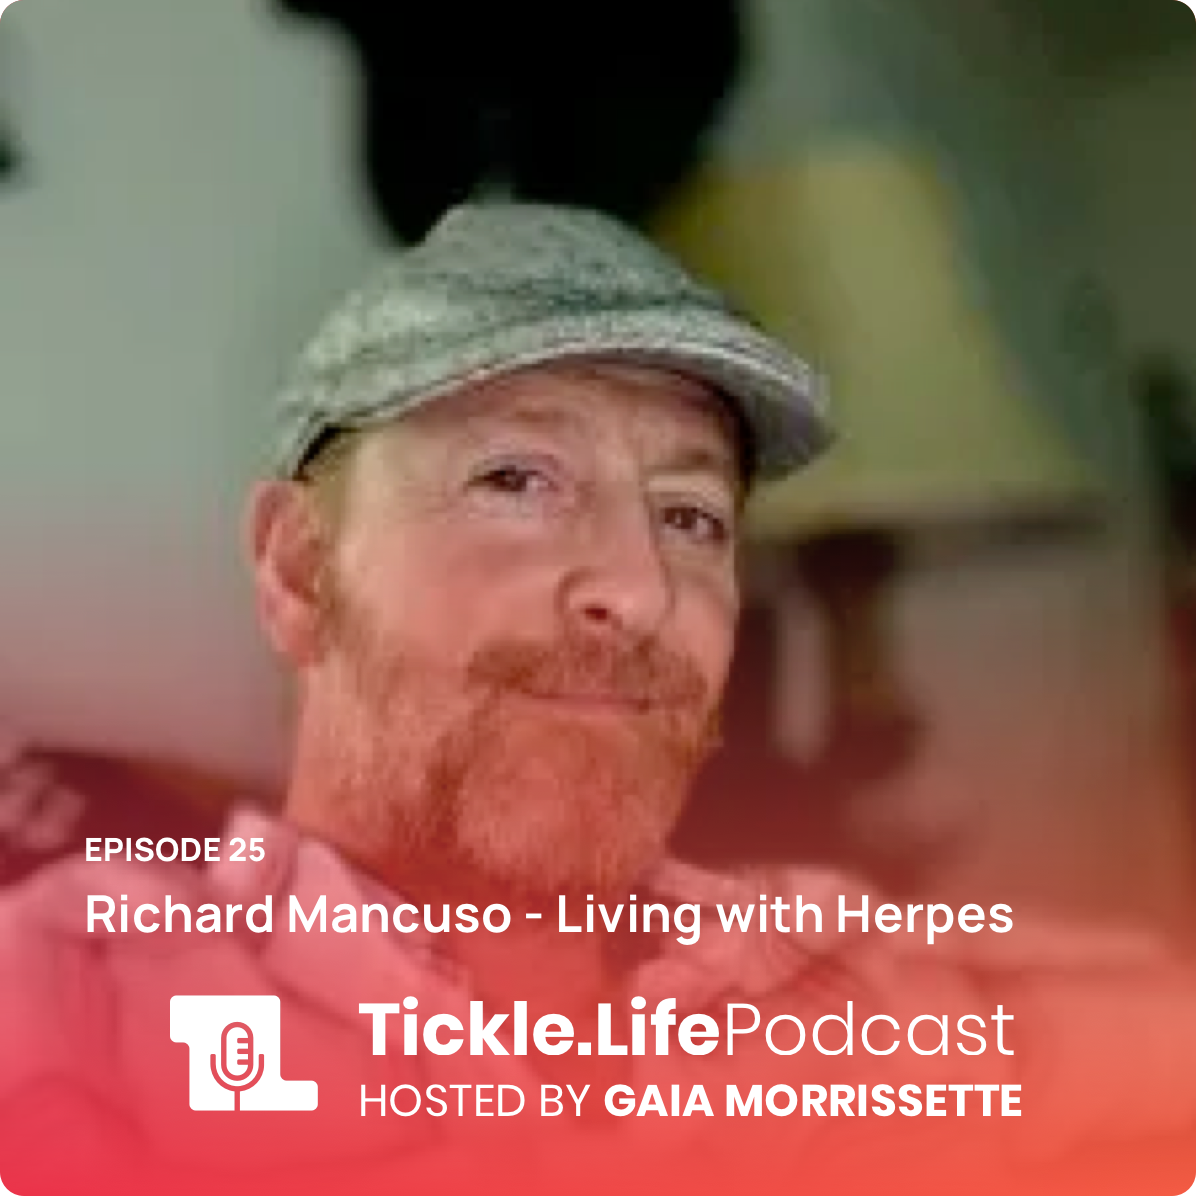 - Richard Mancuso - Living with Herpes